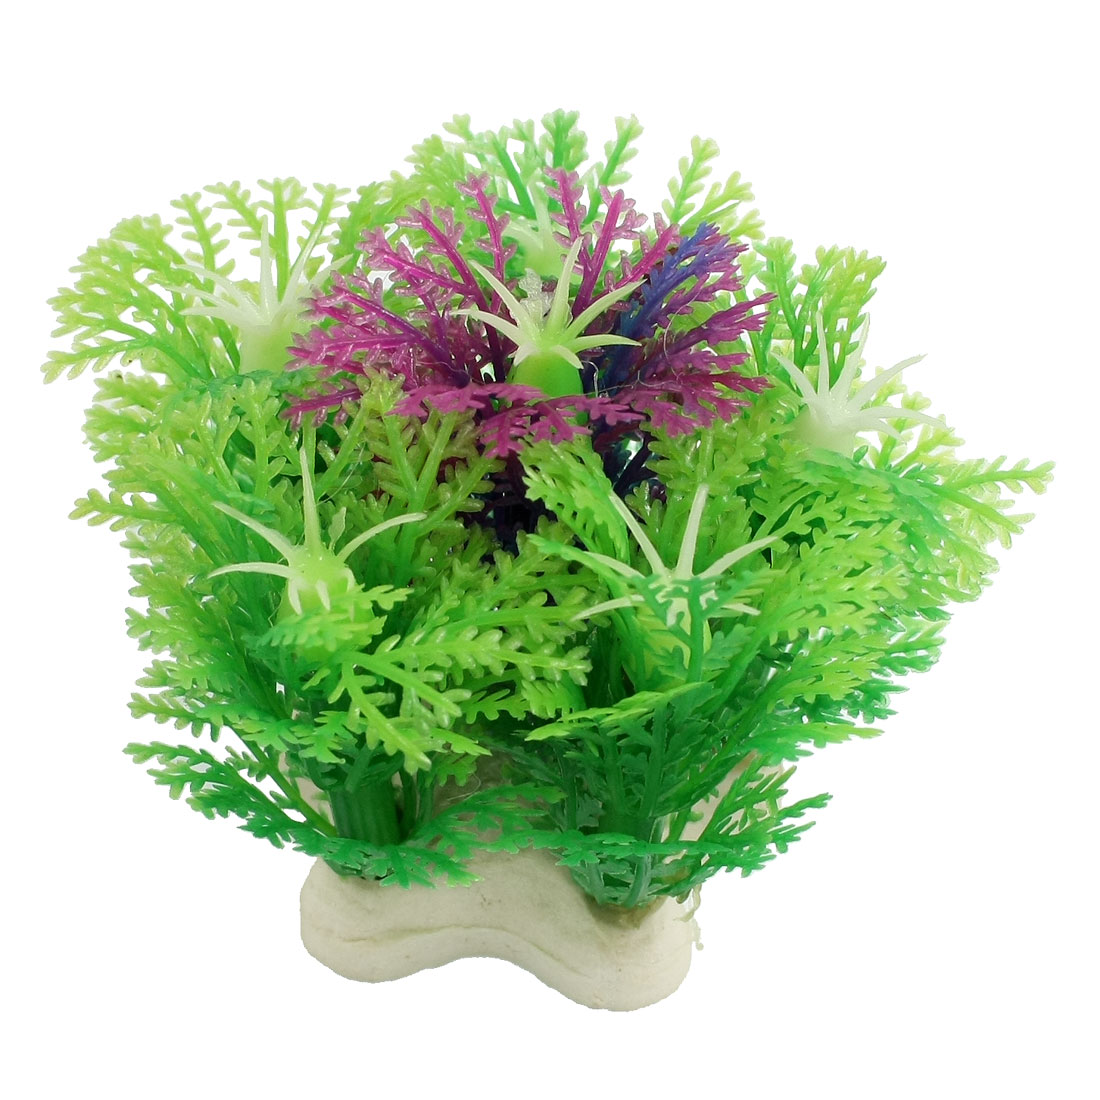 Green Plastic Snowflake Design Purple Stamen Fish Aquarium Landscaping 2.1""